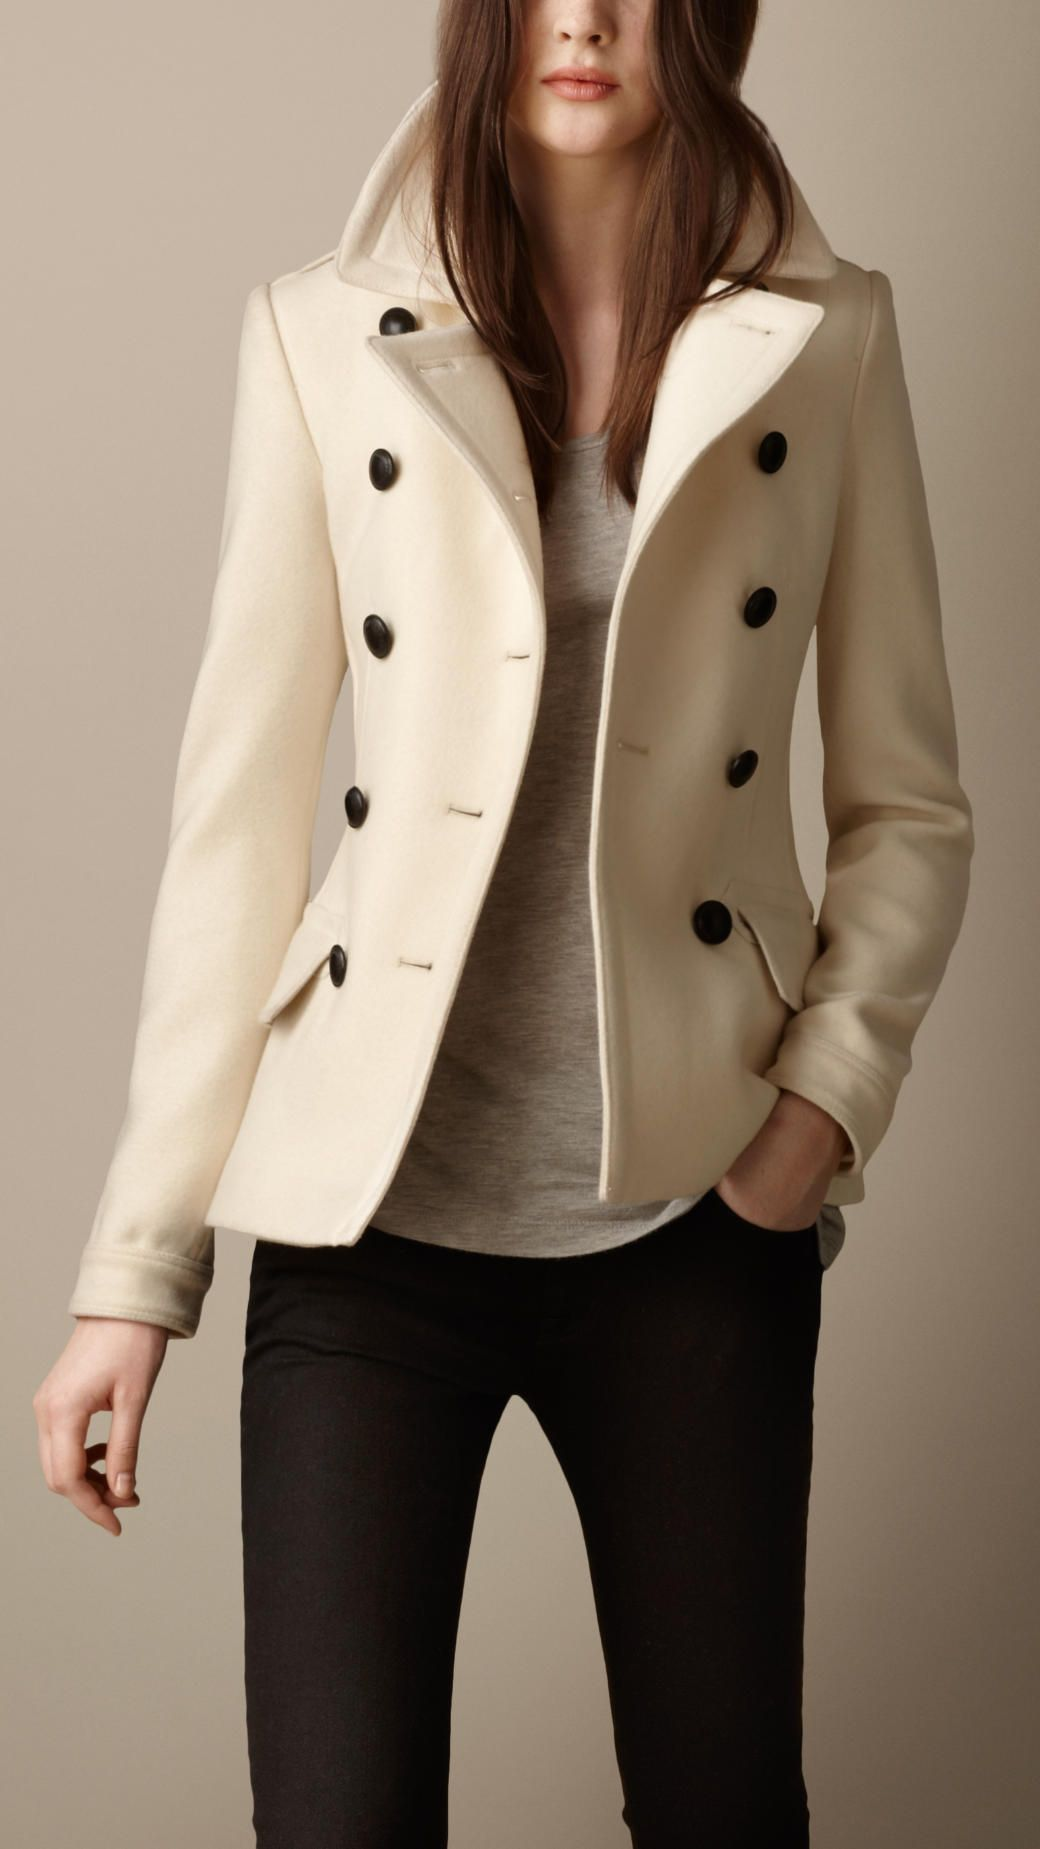 Burberry Wool Cashmere Pea Coat in Beige (natural white) | Lyst ...